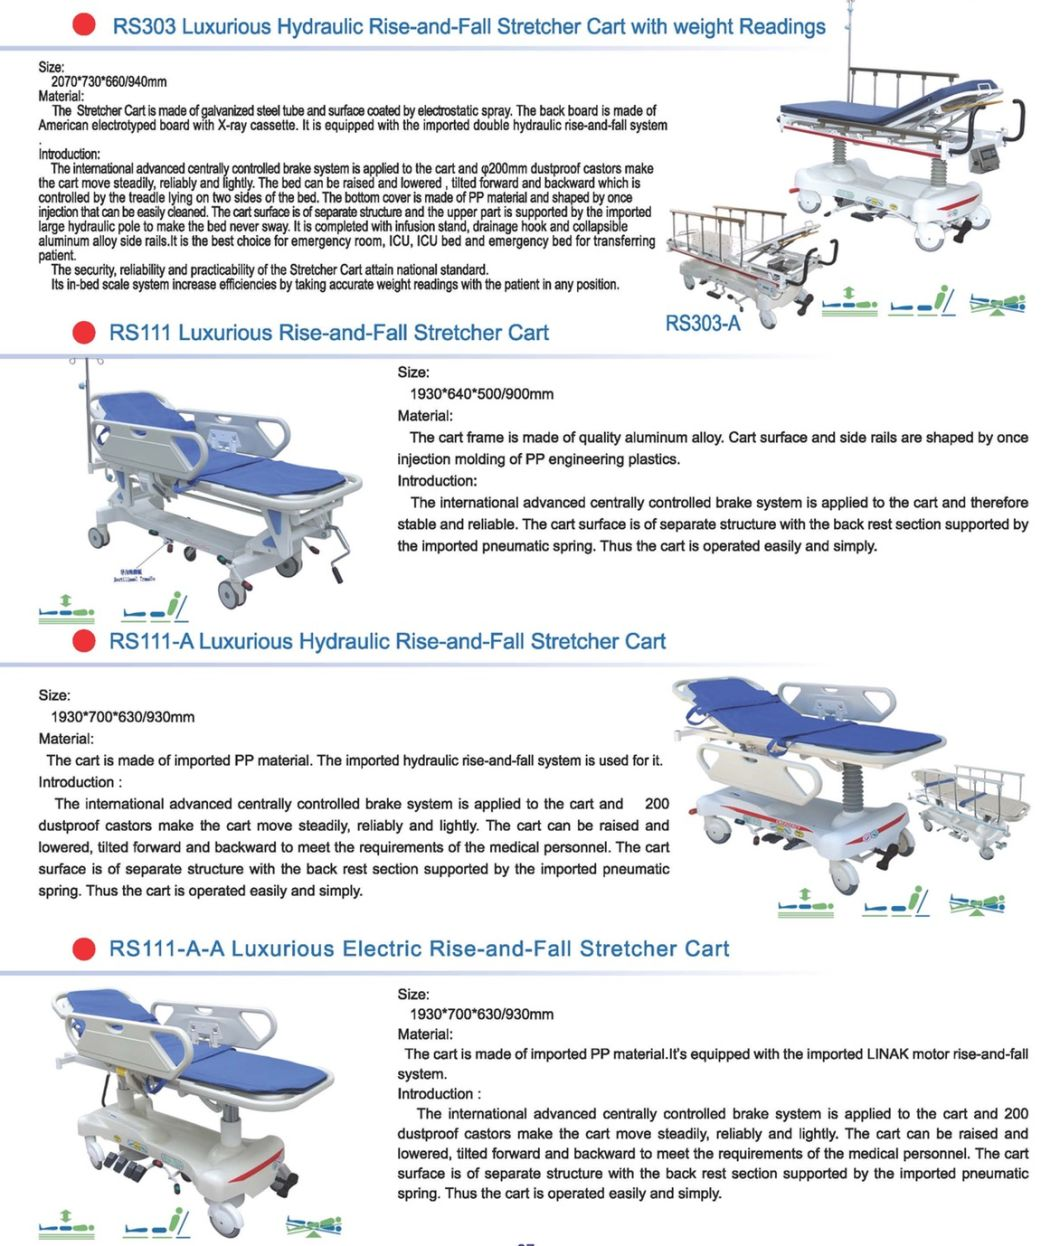 Hospital Hydraulic Rise-and-Fall Patient Stretcher Cart